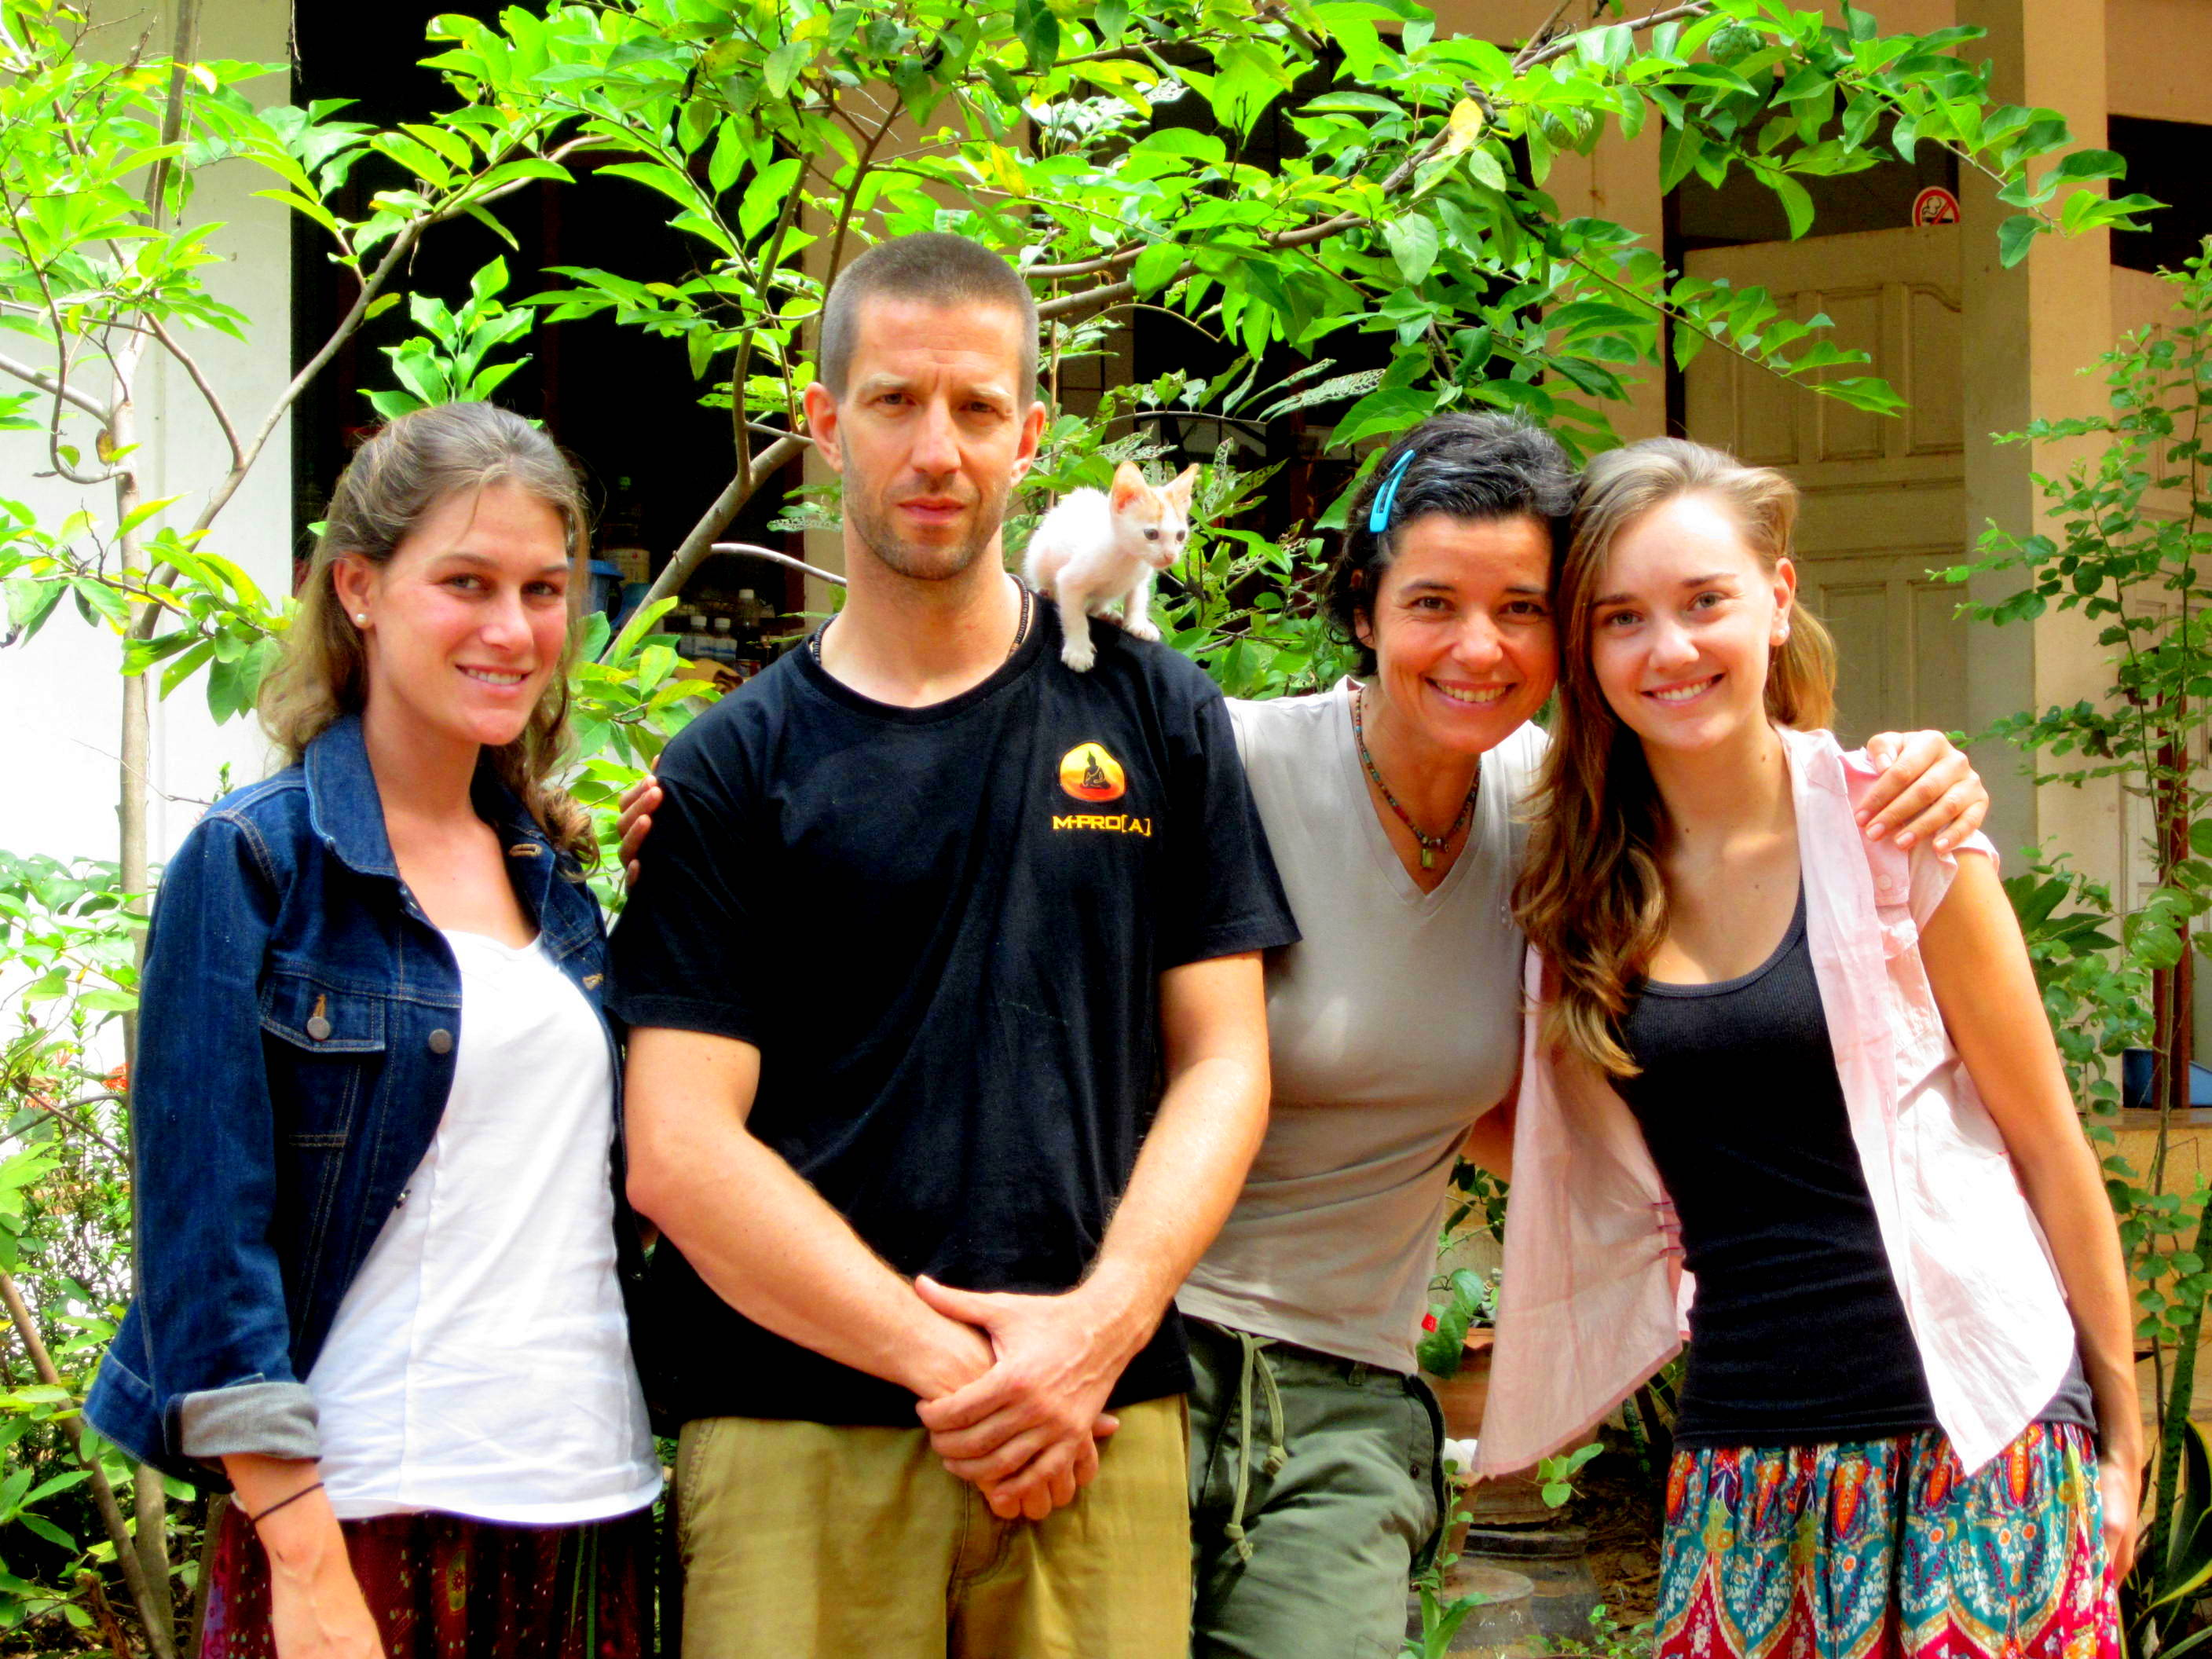 Nicole and I with Christian and Anja, the leaders of the Mindfulness Project in Khon Kaen, Thailand